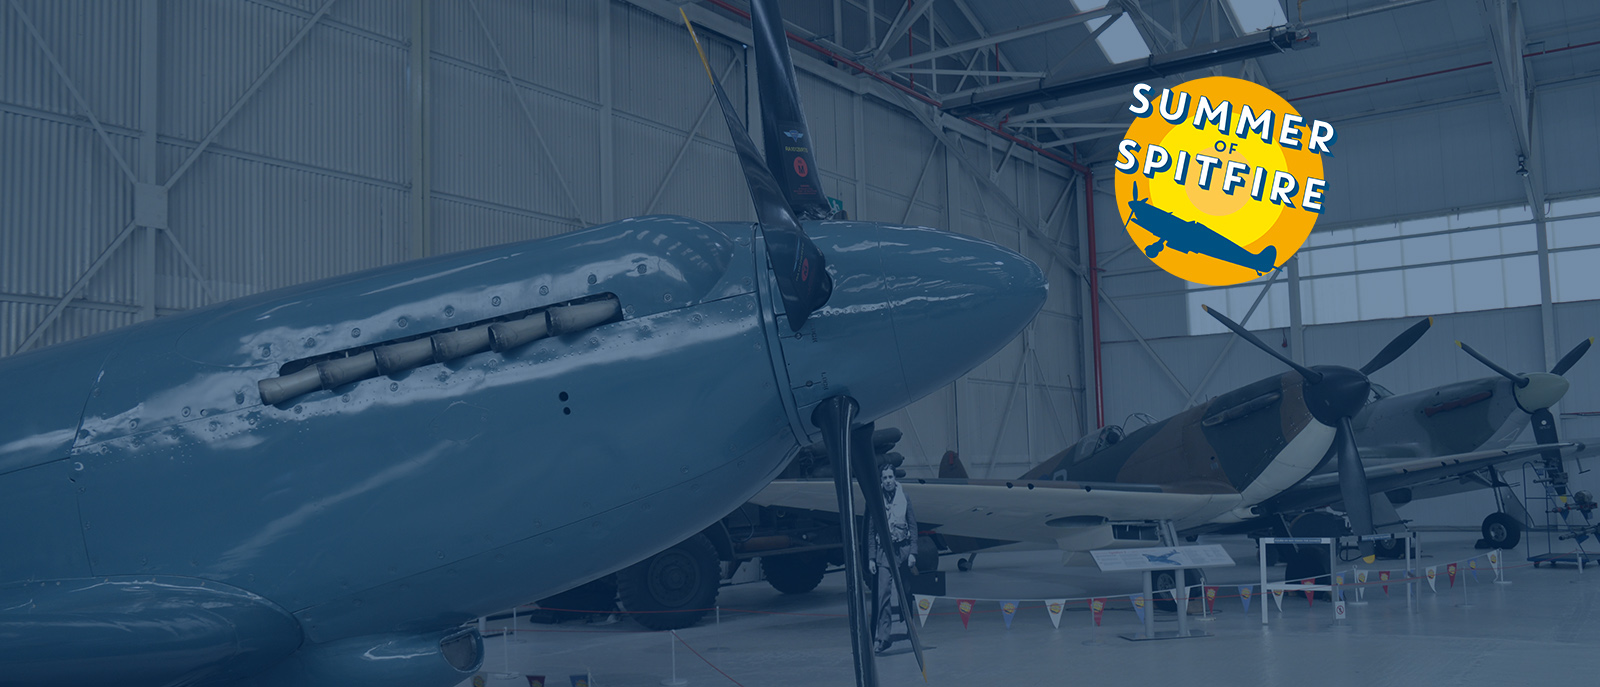 RAF Museum in London & RAF Museum Cosford - free family fun activities